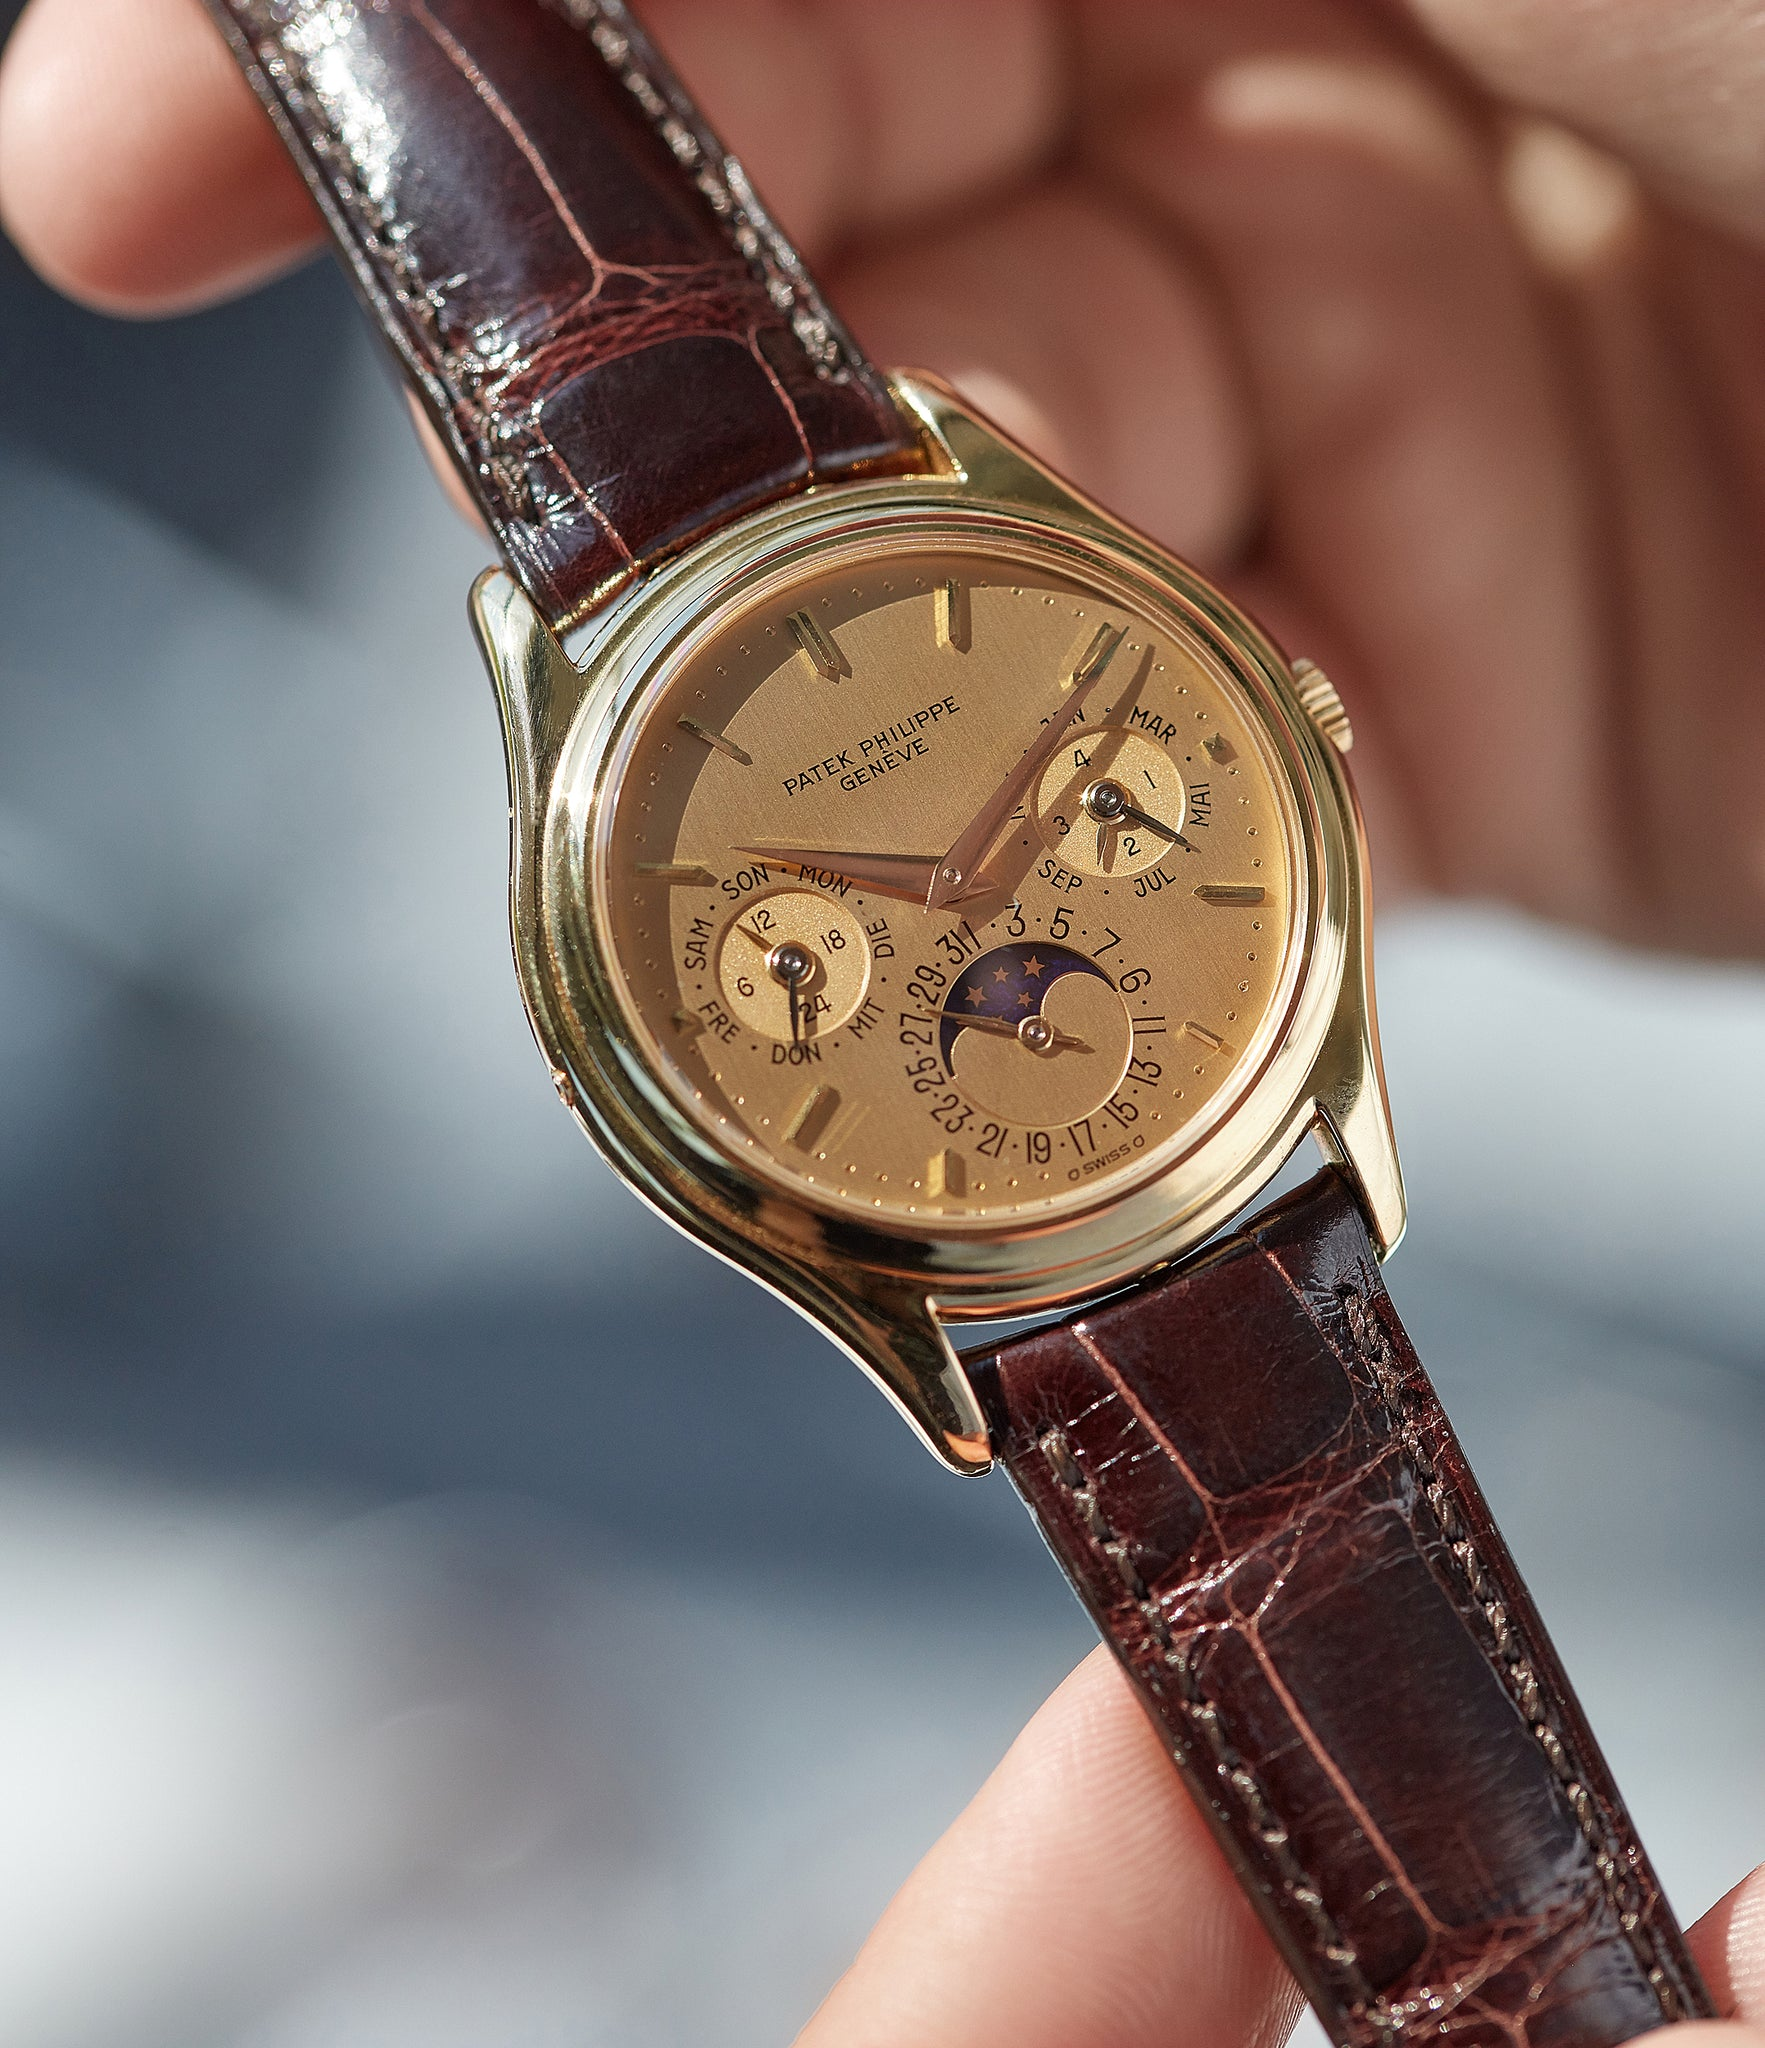 Patek Philippe 3940 first series with a gold dial, very rare